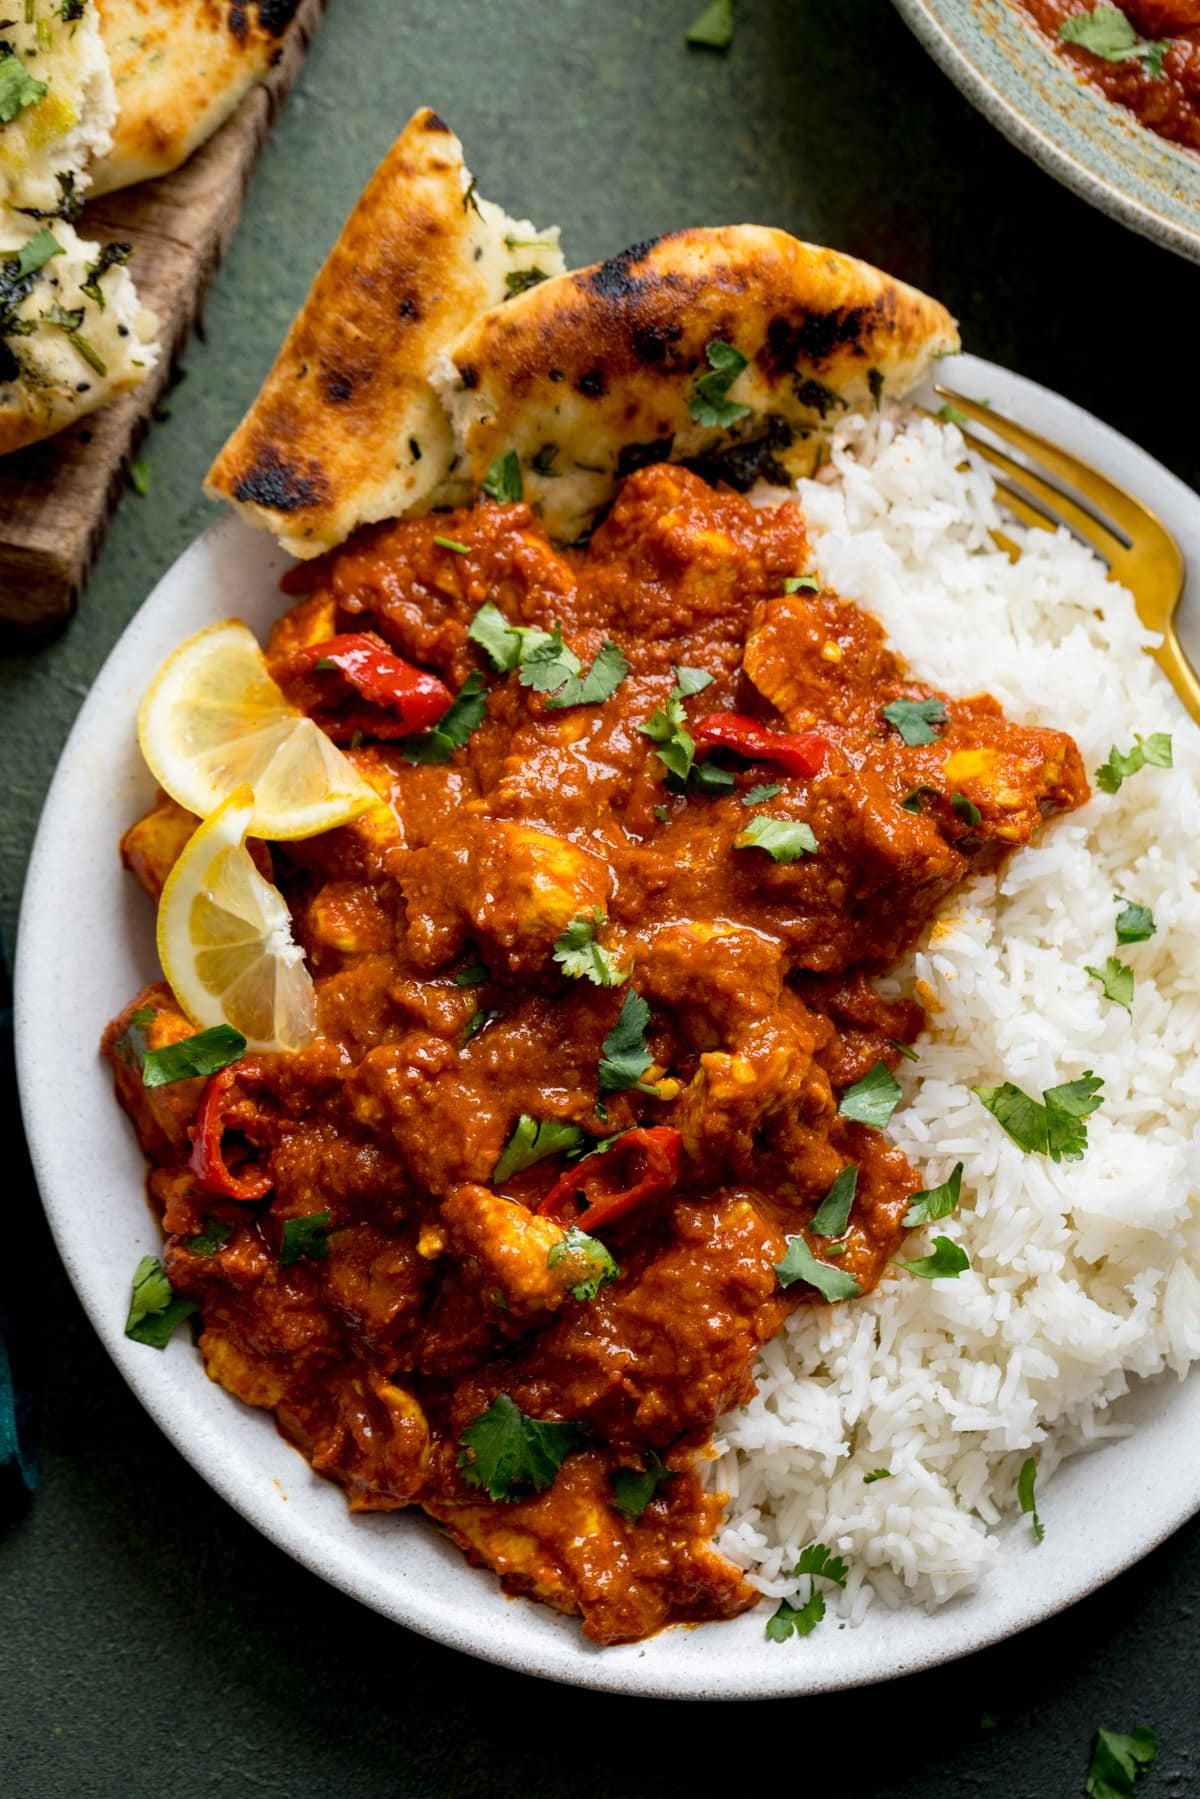 Chicken pathia with boiled rice and lemon slice son a white plate with naan bread. Plate is on a dark background,